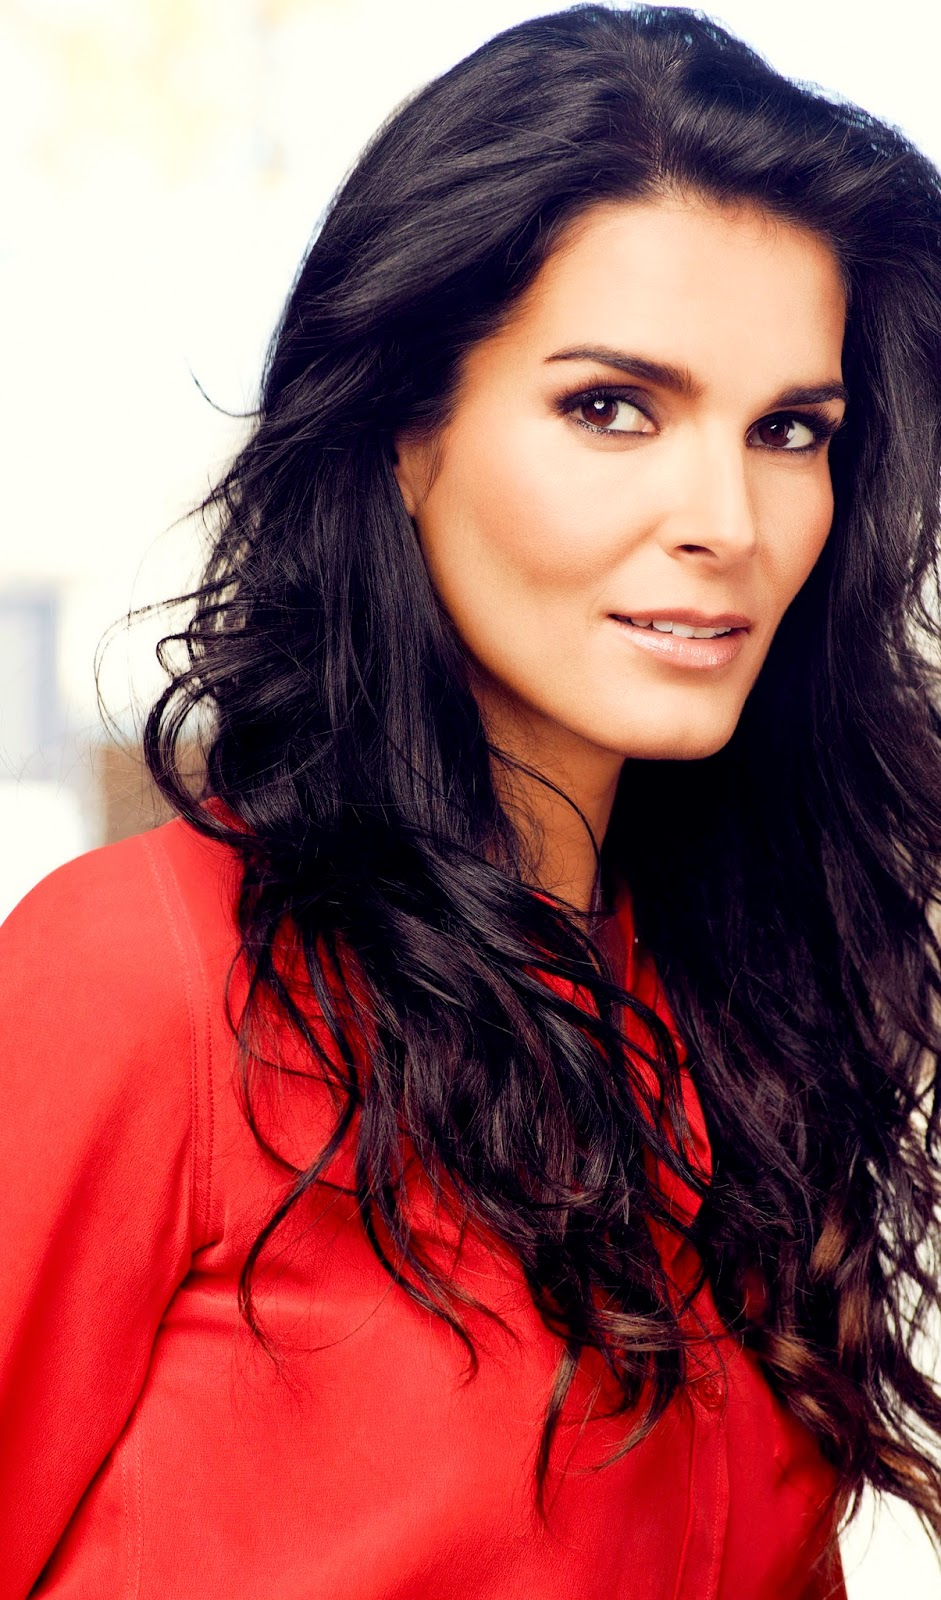 Angie Harmon At More Magazine September 2013: The Latest Celebrity Picture: Angie Harmon